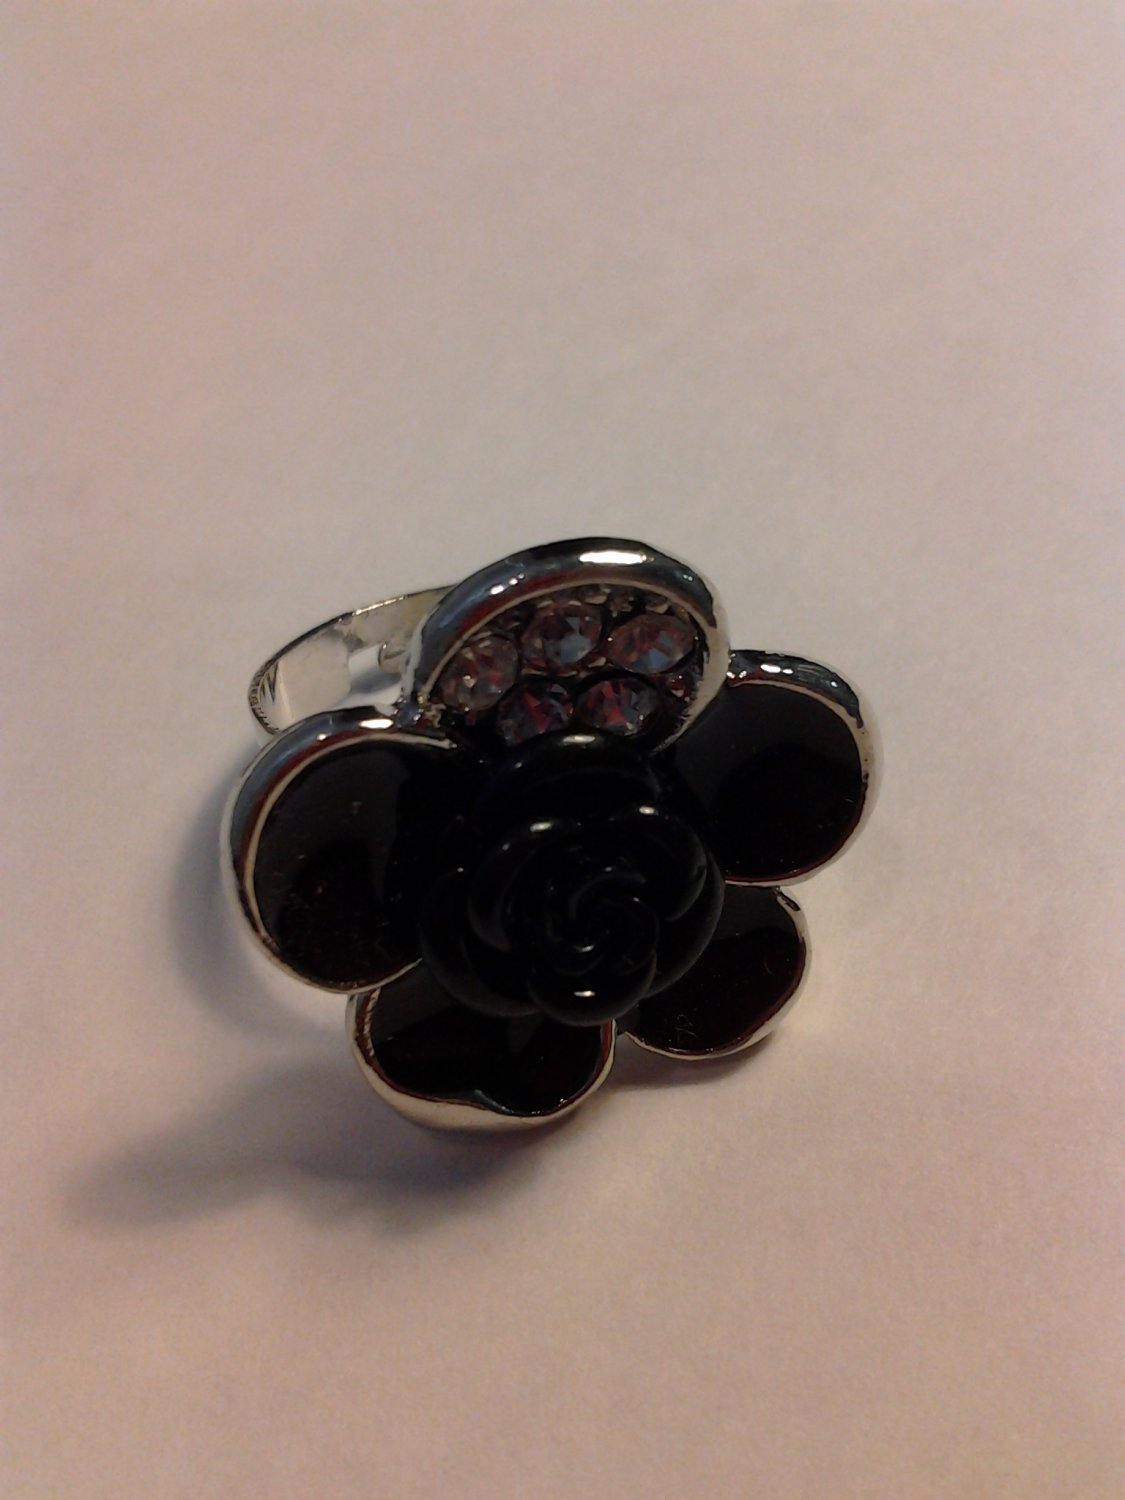 Brand New Beautiful Black Flower Adjustable Sliver Ring With Bling